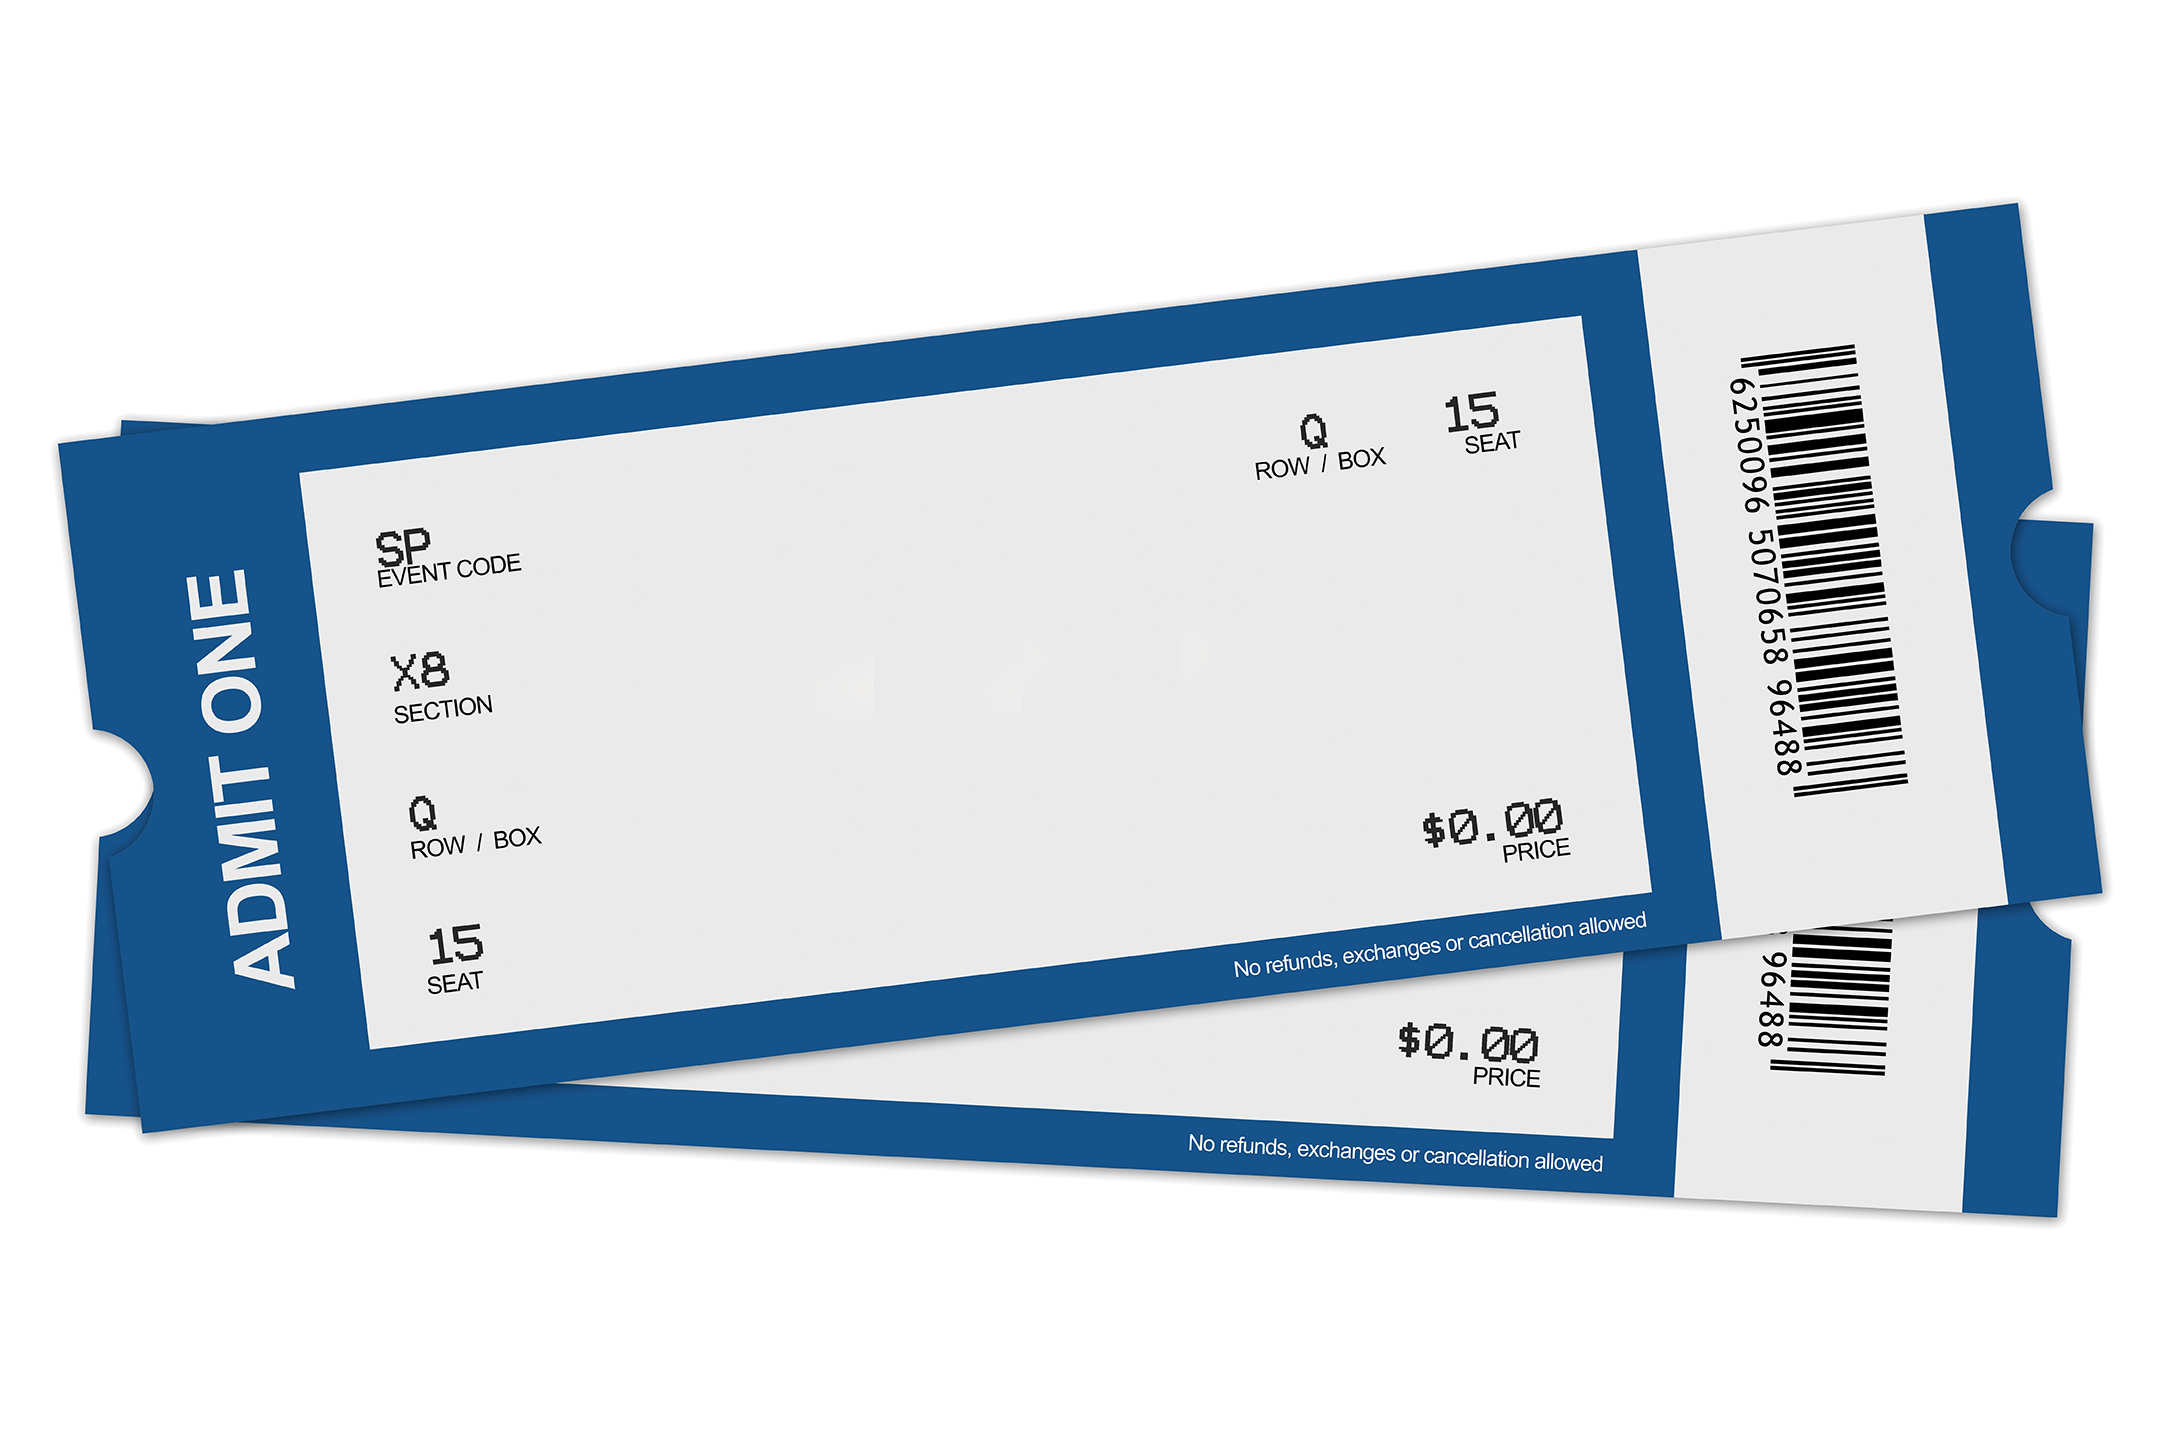 Blank Ticket Png - ClipArt Best